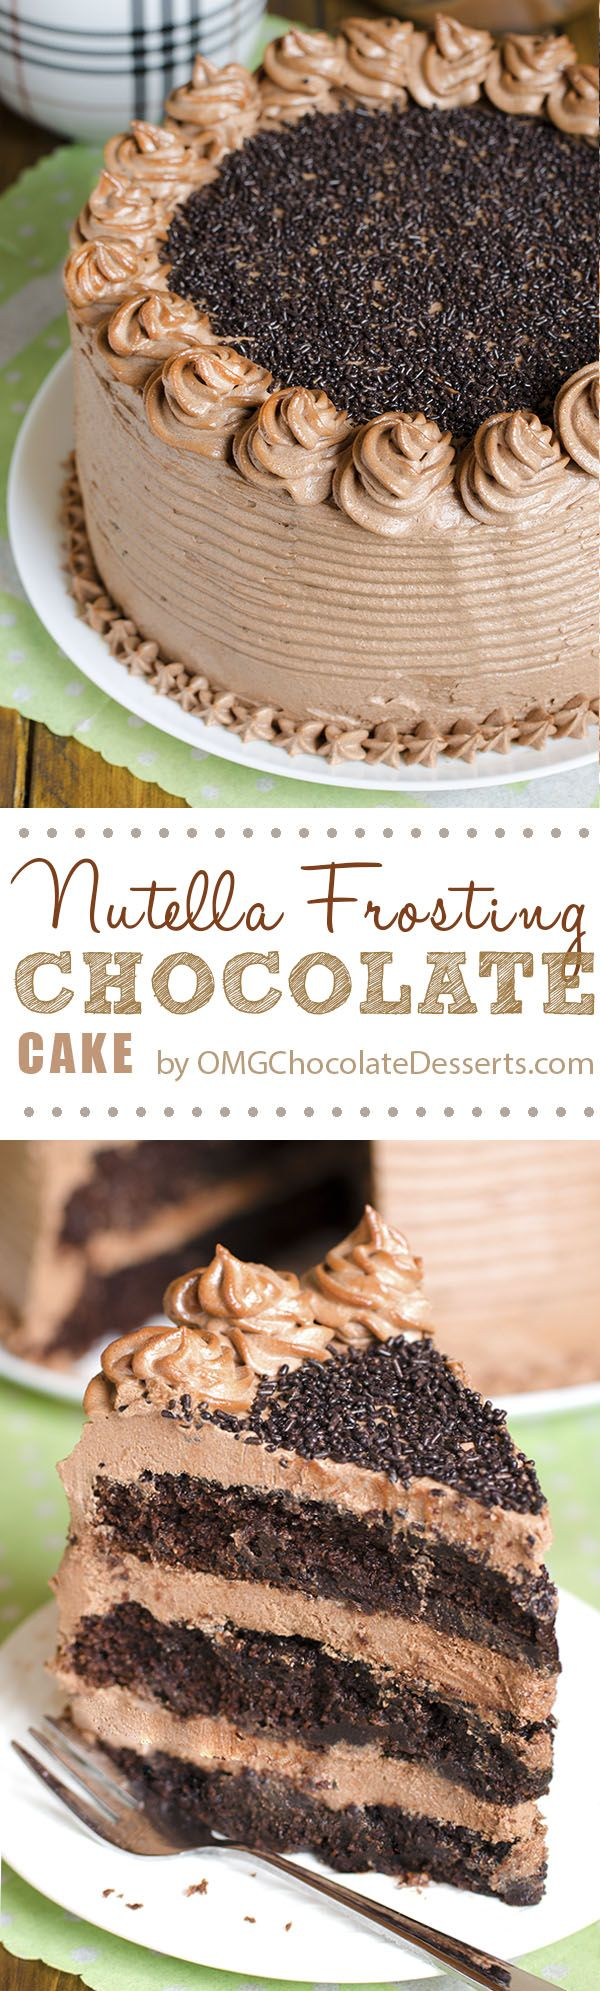 Decadent Nutella Chocolate Cake | OMGChocolateDesserts.com | #Nutella #chocolate #cake